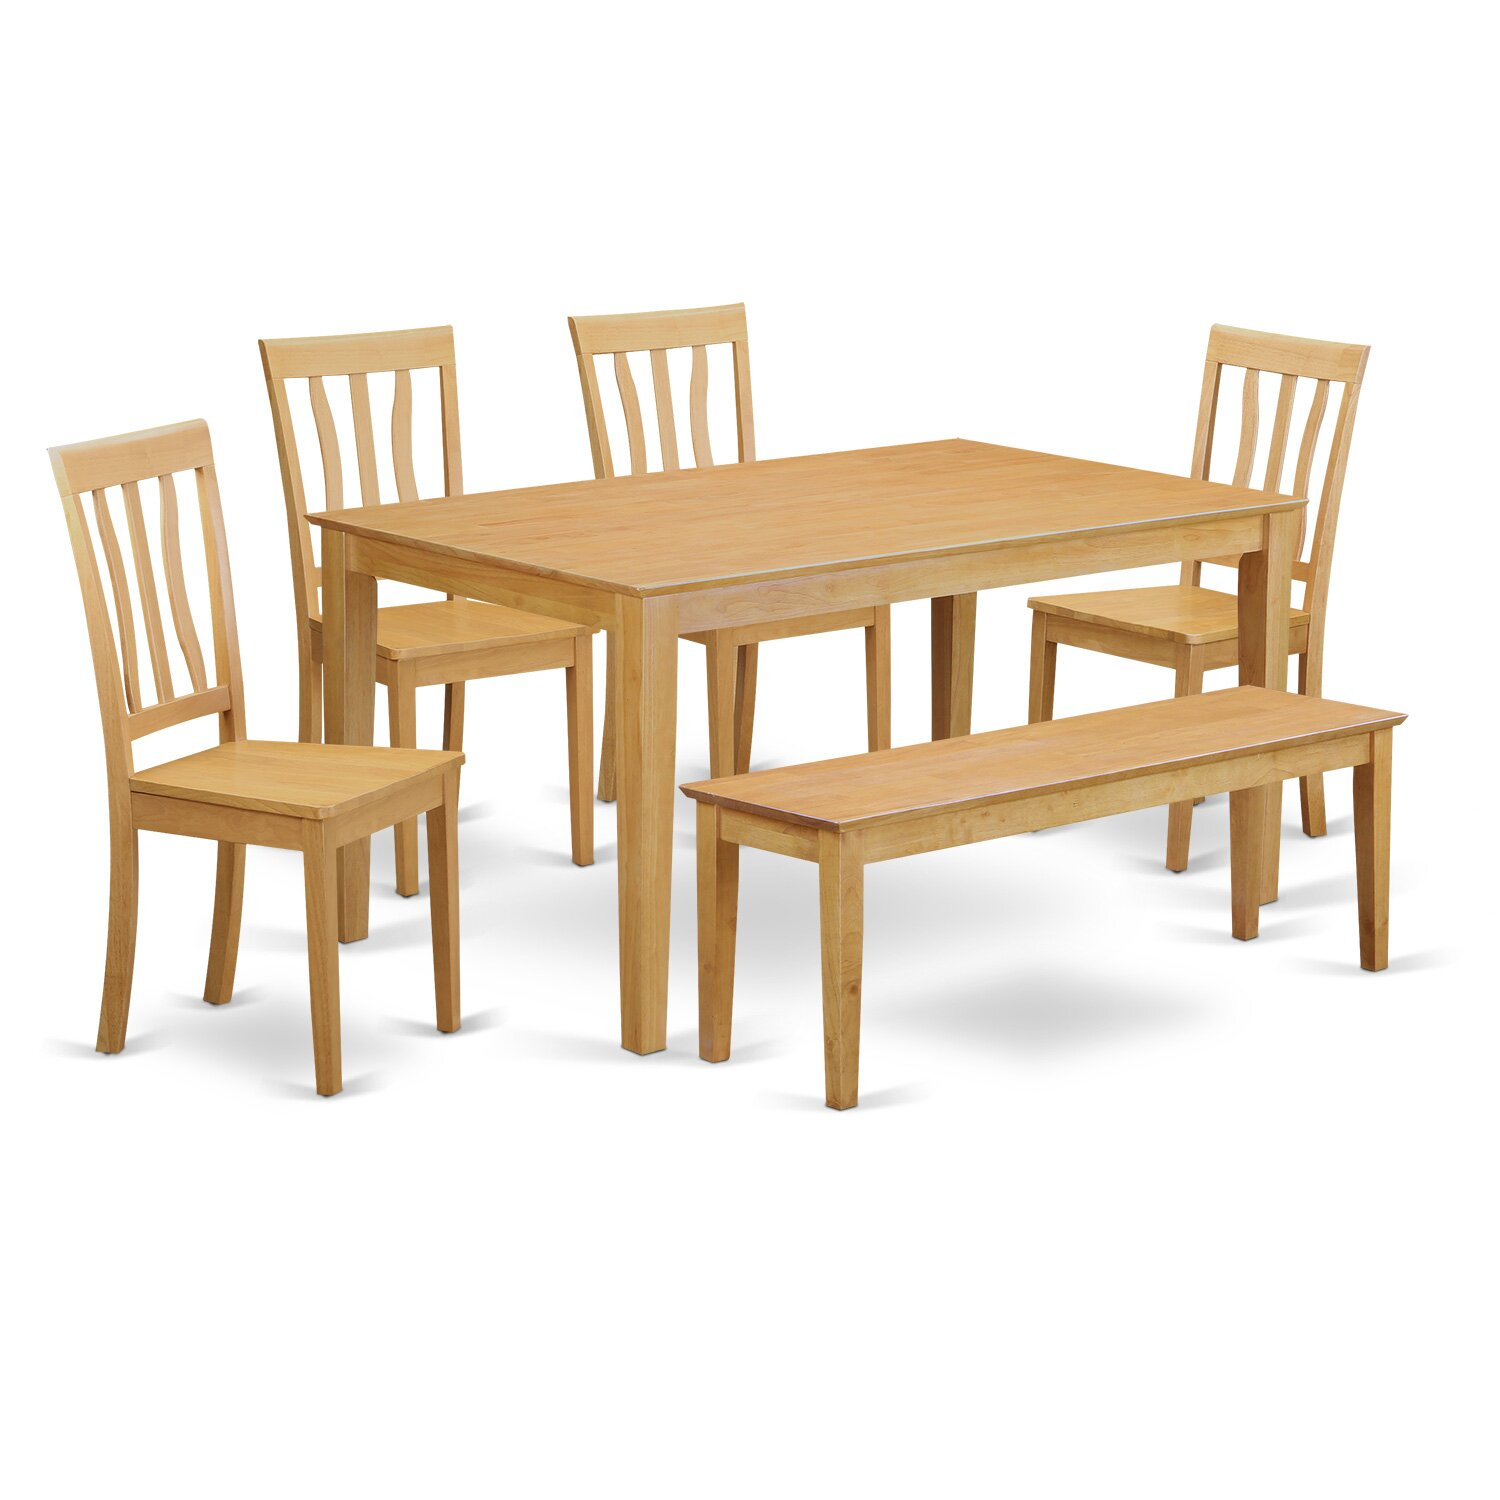 Wooden importers capri 6 piece dining set wayfair for Dining room sets 6 piece